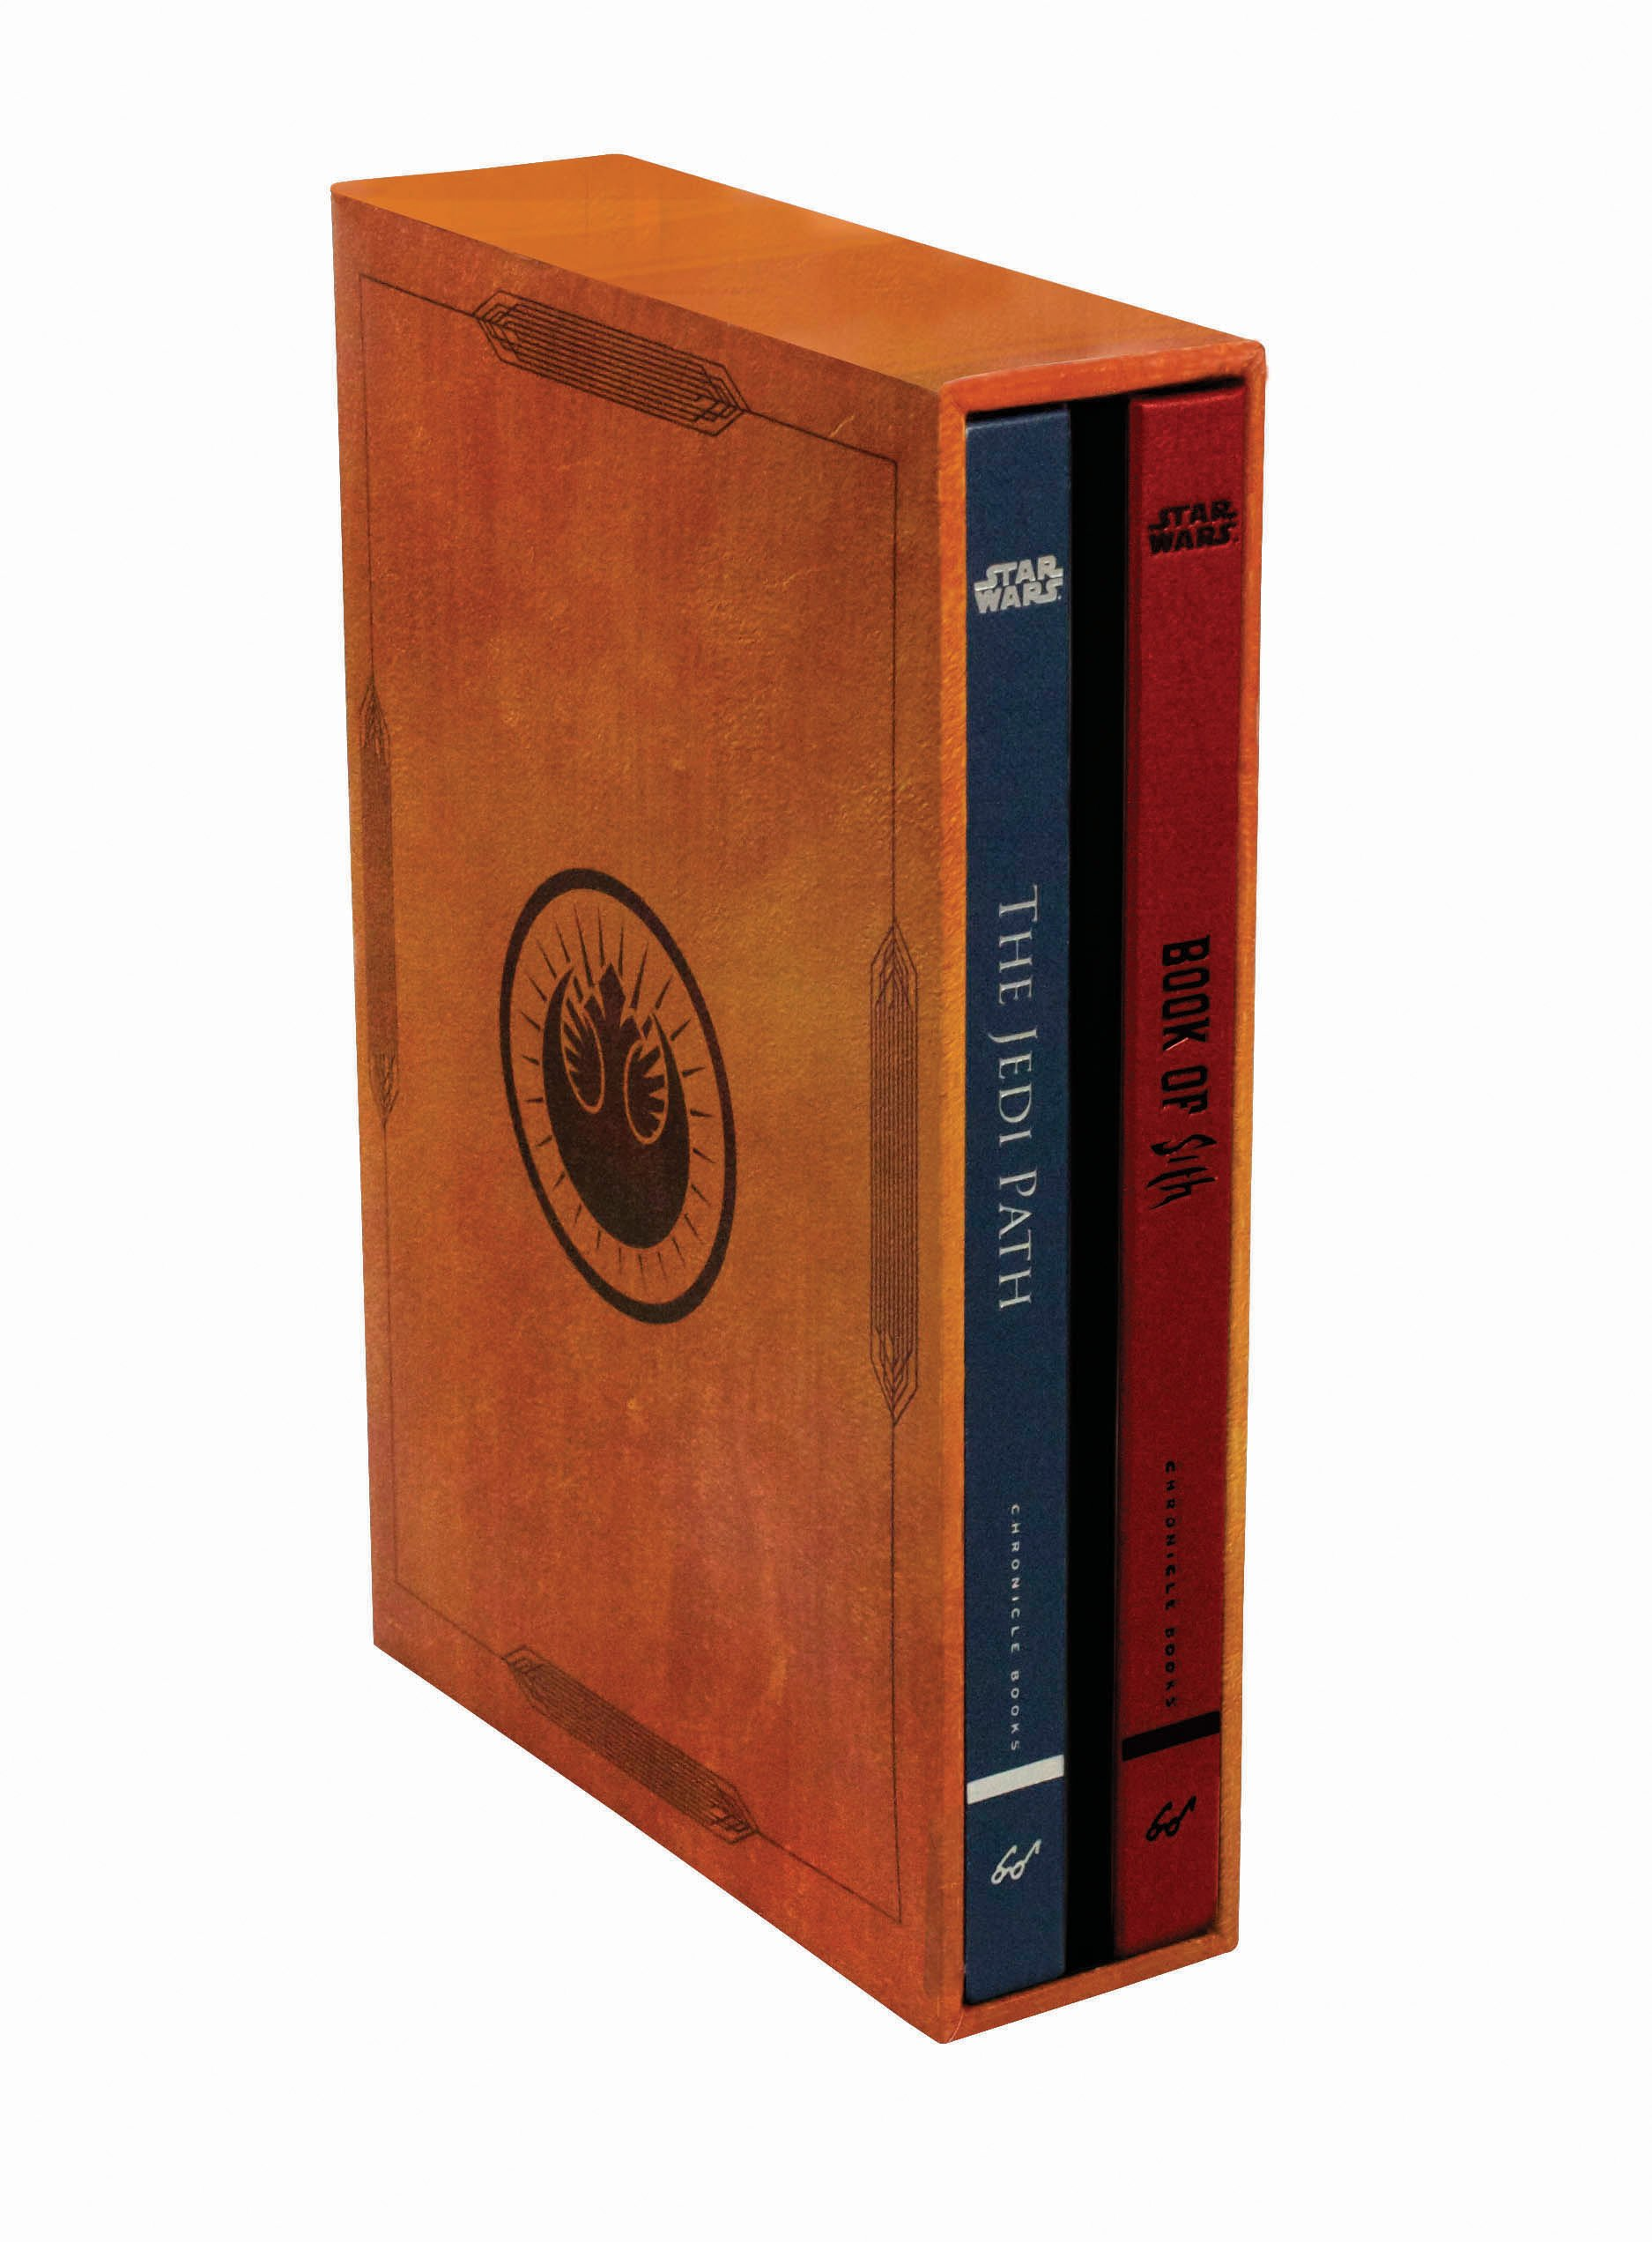 The Jedi Path / The Book of Sith Deluxe Edition